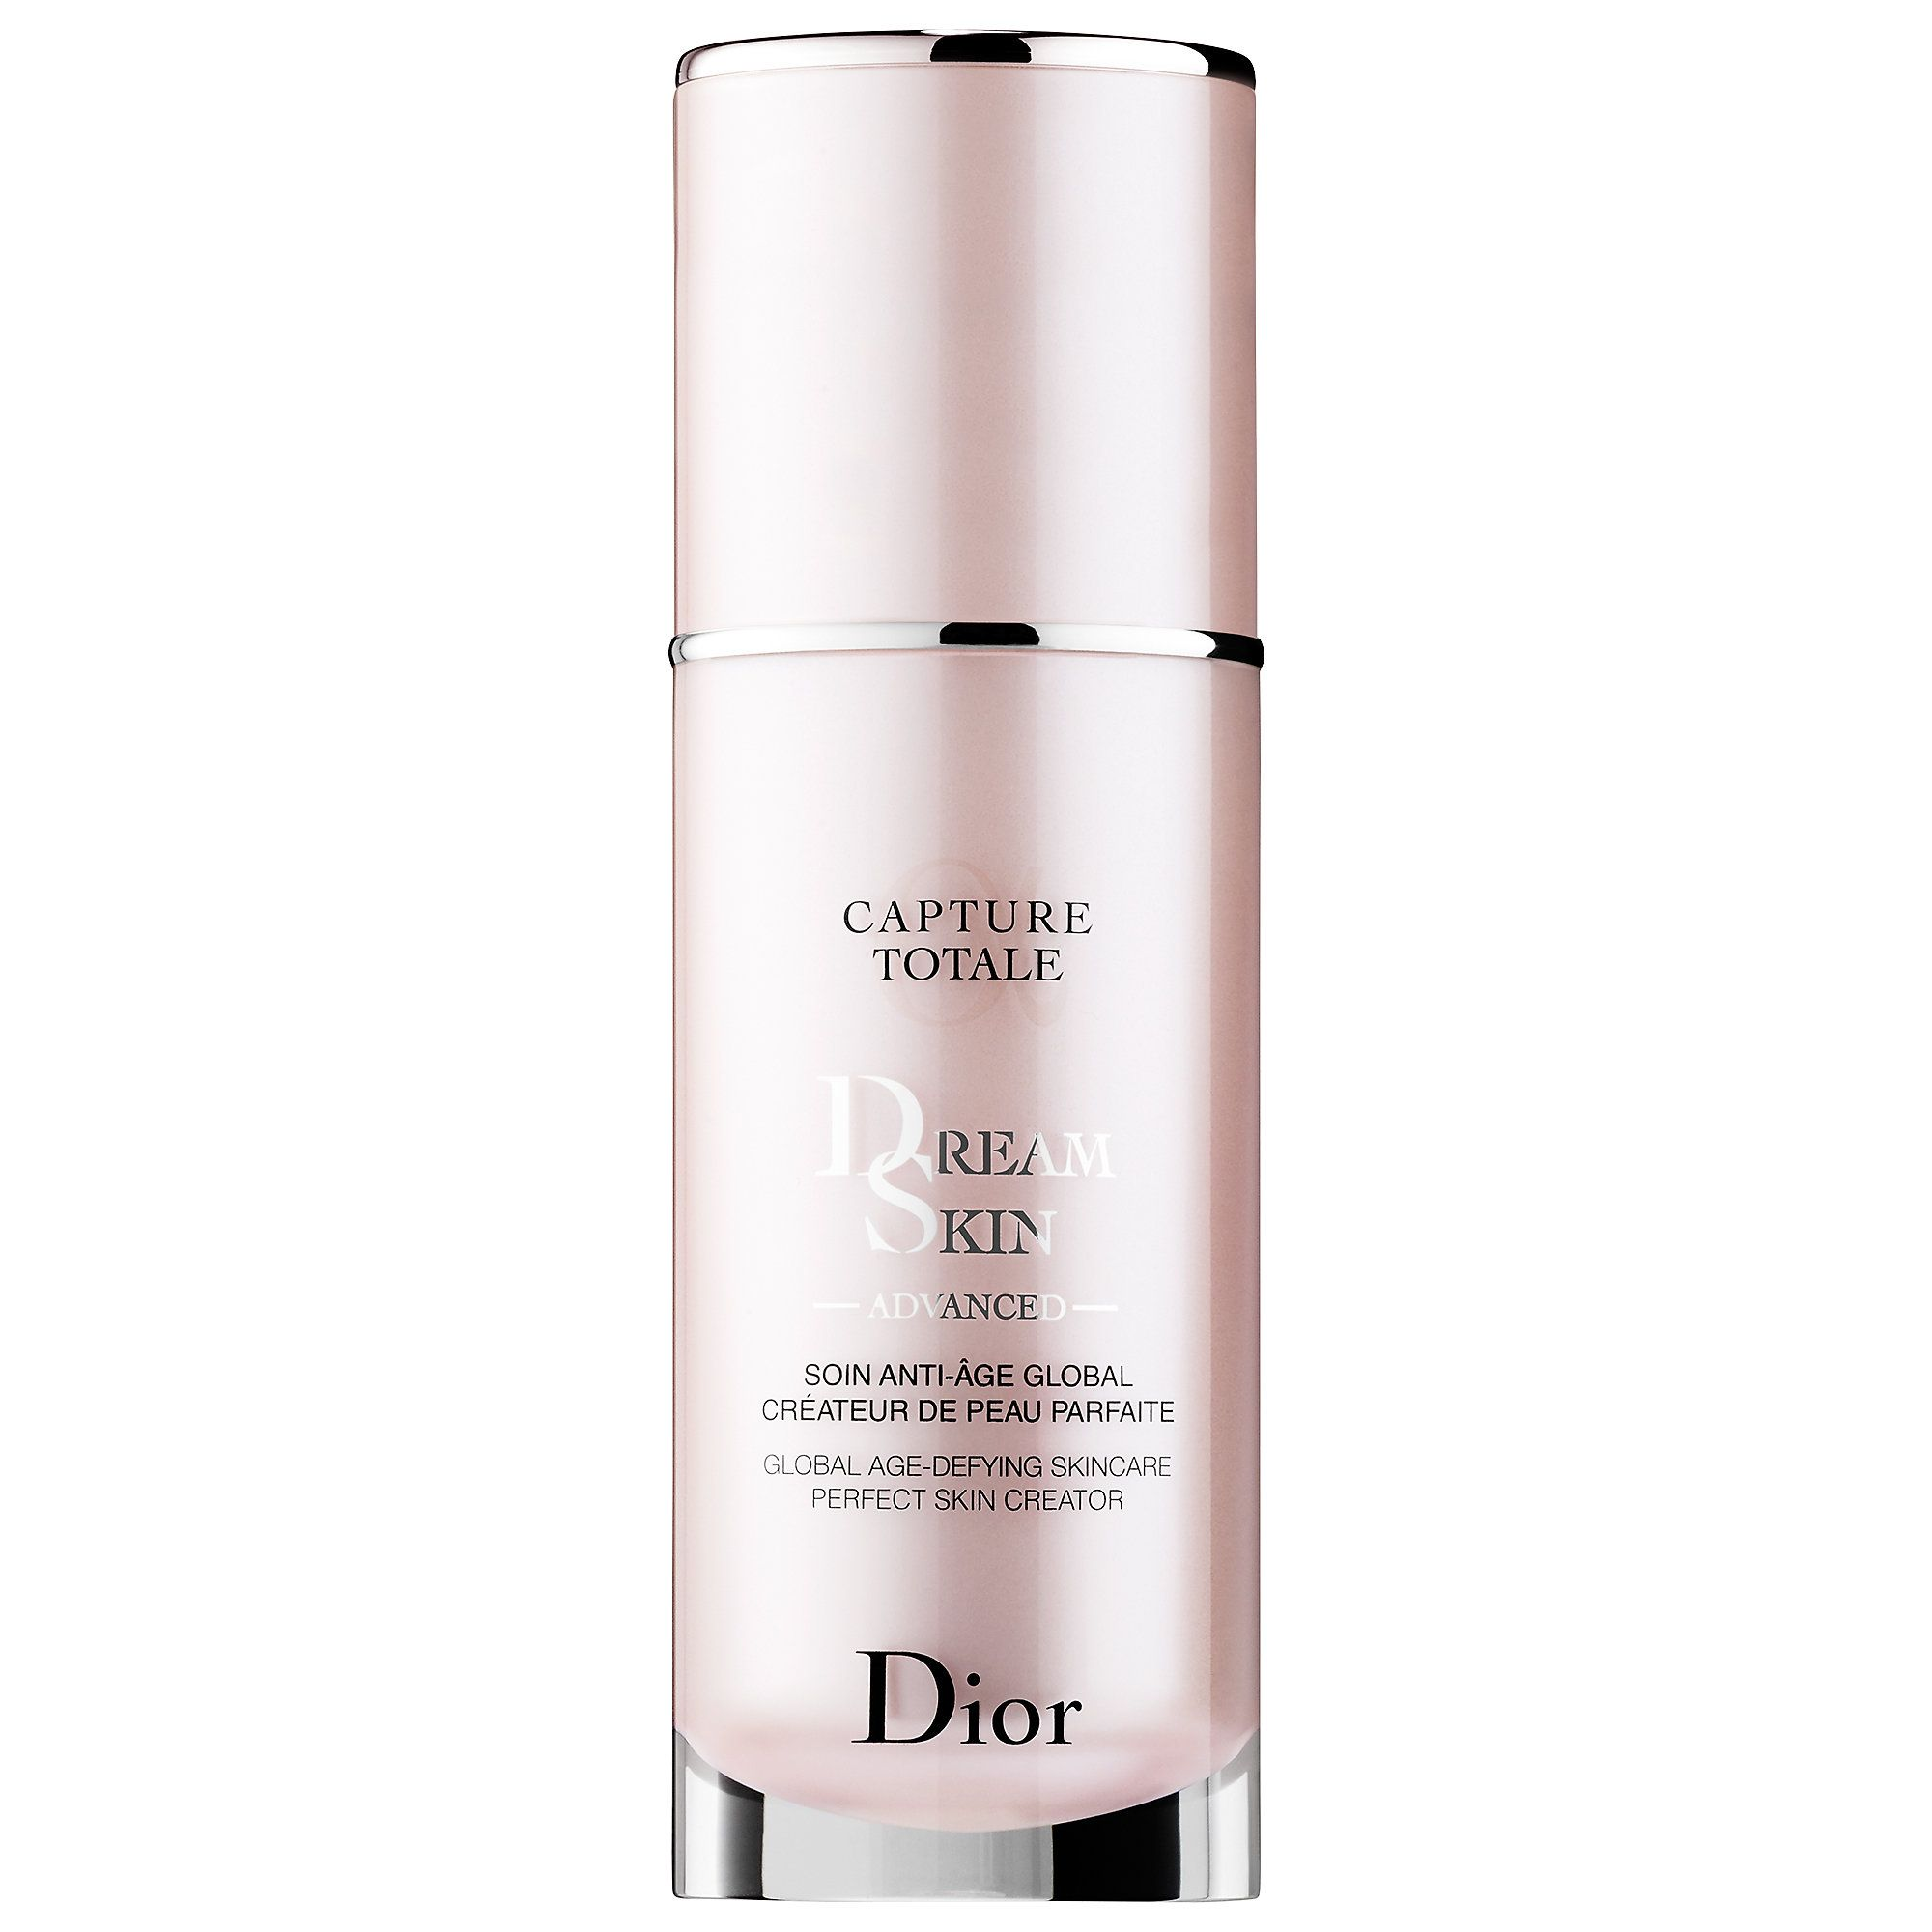 Dreamskin Skin Perfector Dior Sephora Dior Capture Totale Even Out Skin Tone Sephora